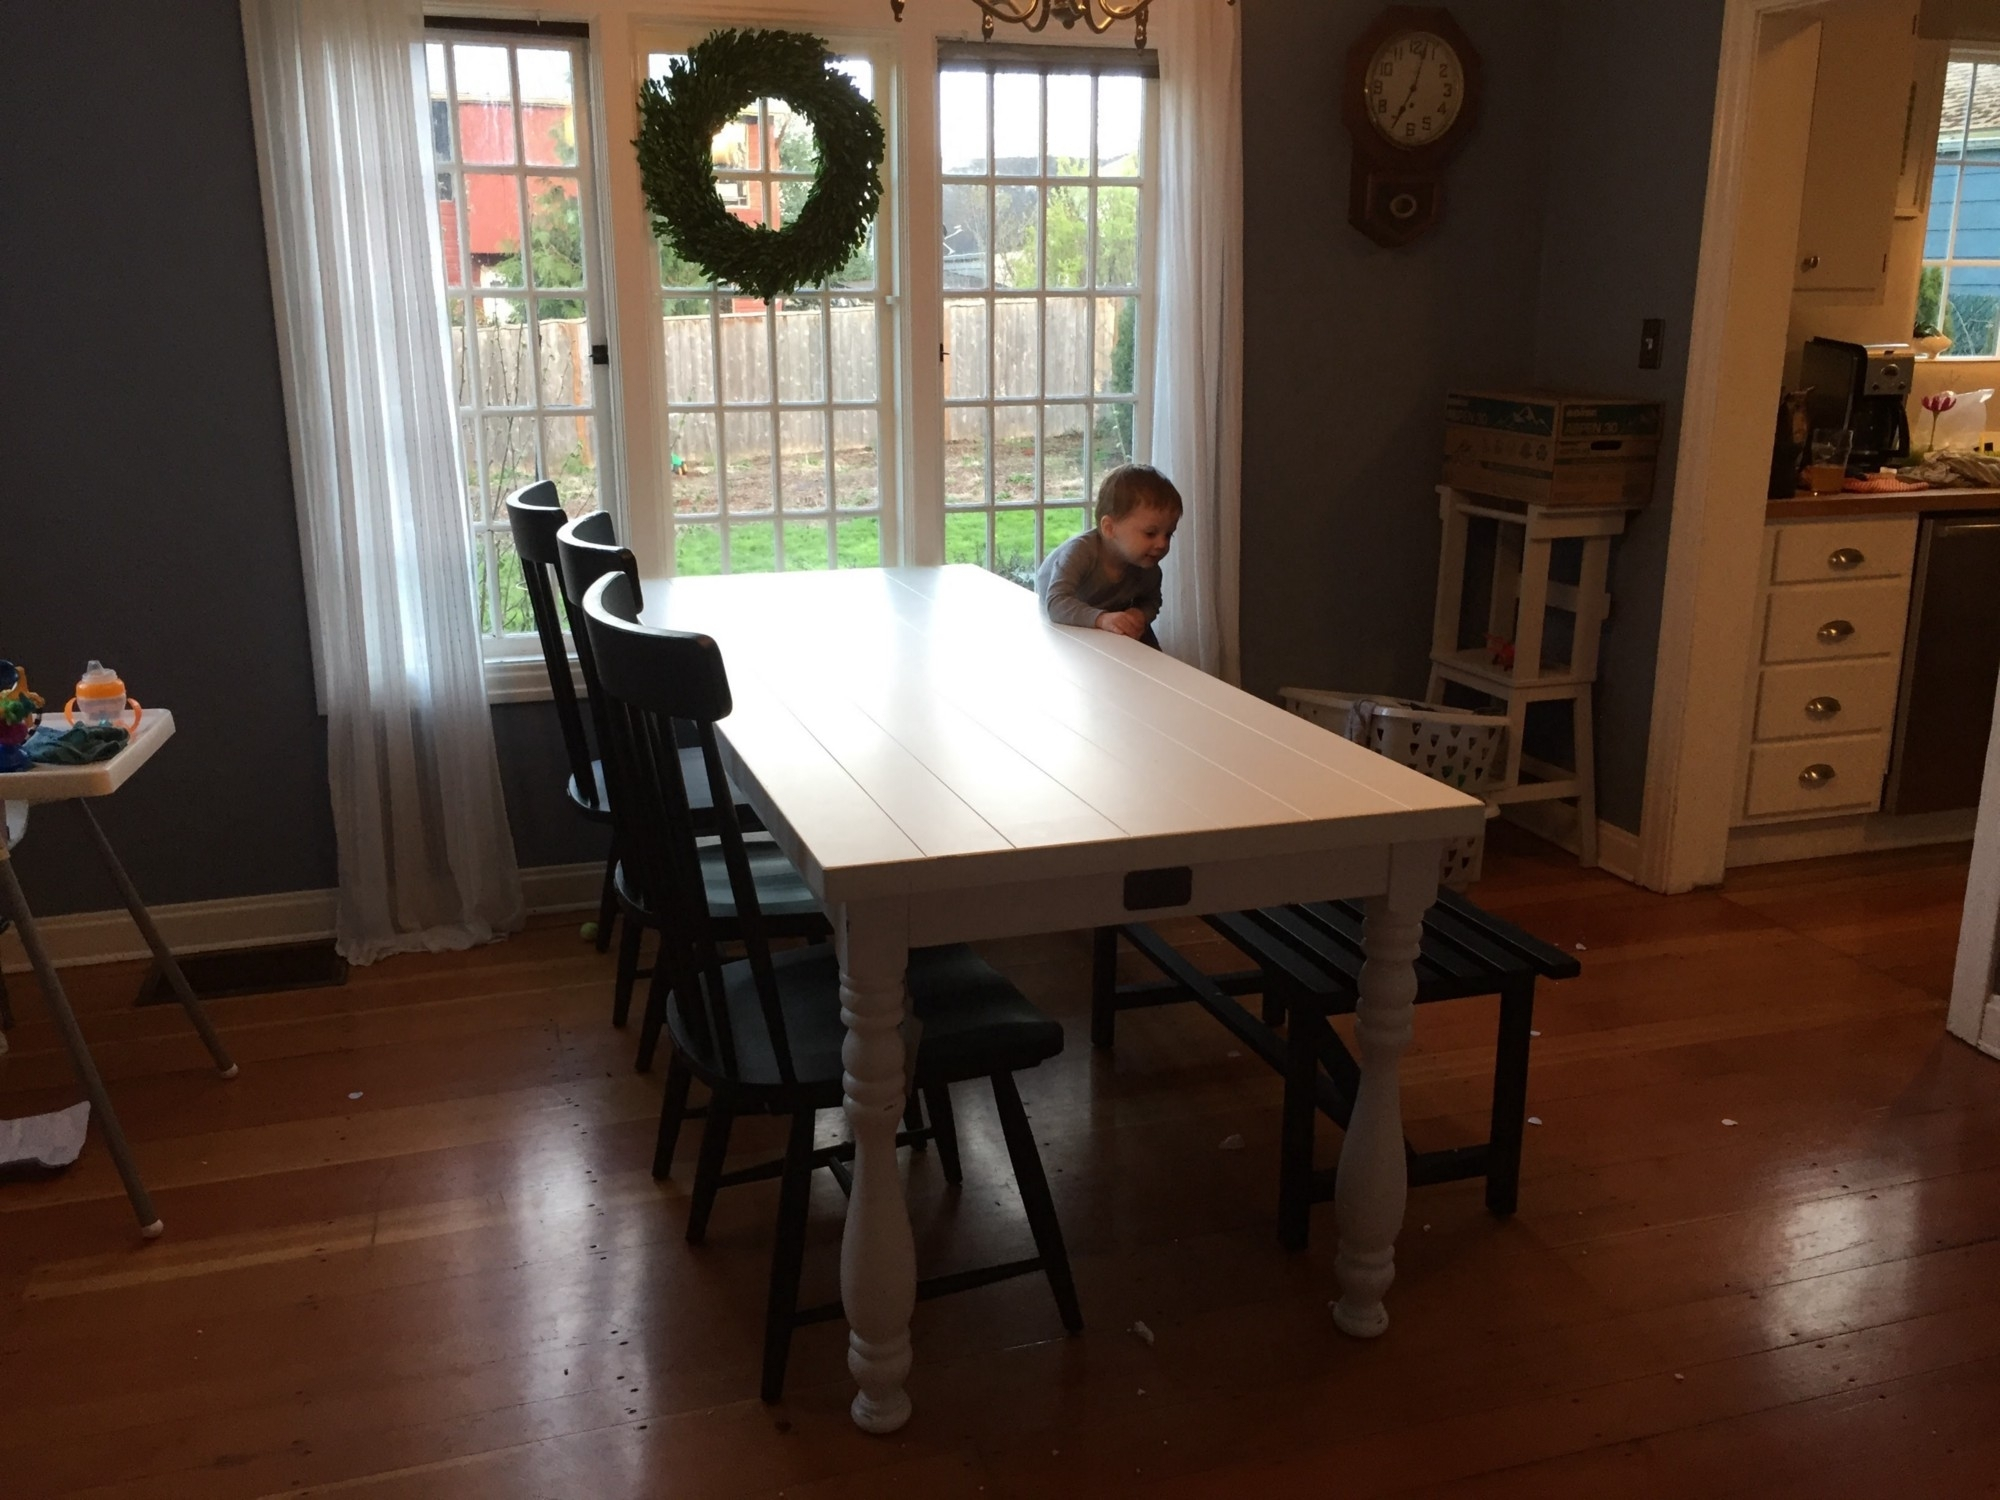 Joanna Gaines' Magnolia Home Furniture Line — A Review In Most Up To Date Magnolia Home Sawbuck Dining Tables (Image 6 of 20)